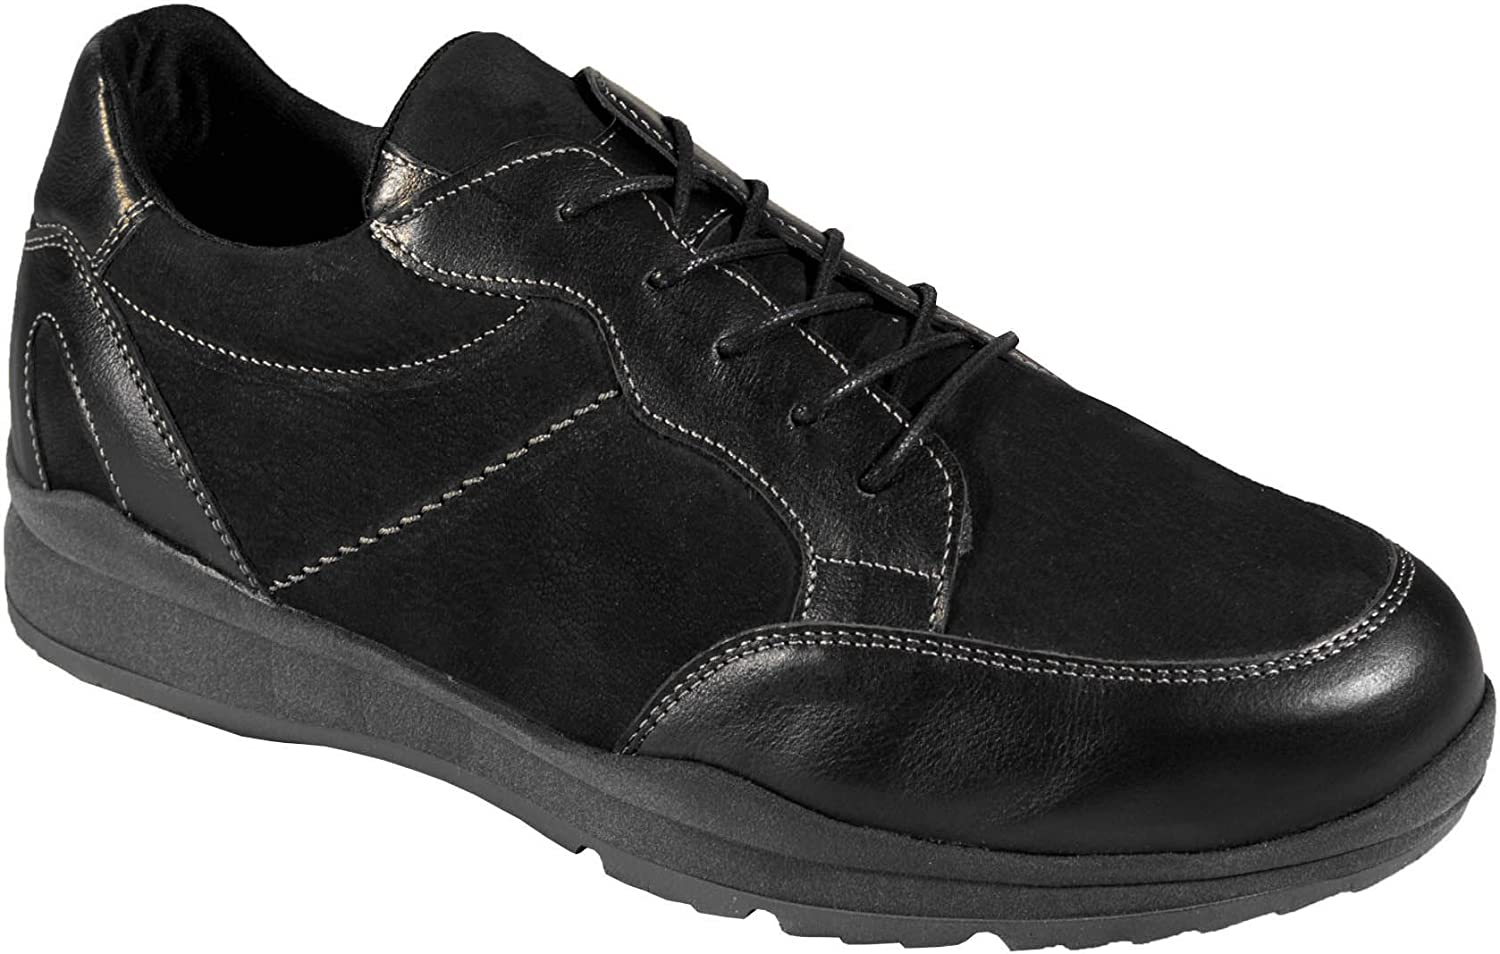 DB's Men's Extra Wide Lace Up Trainers Bill in Black 6E - 8E Extra Extra Wide, Extra Extra Wide and Deep